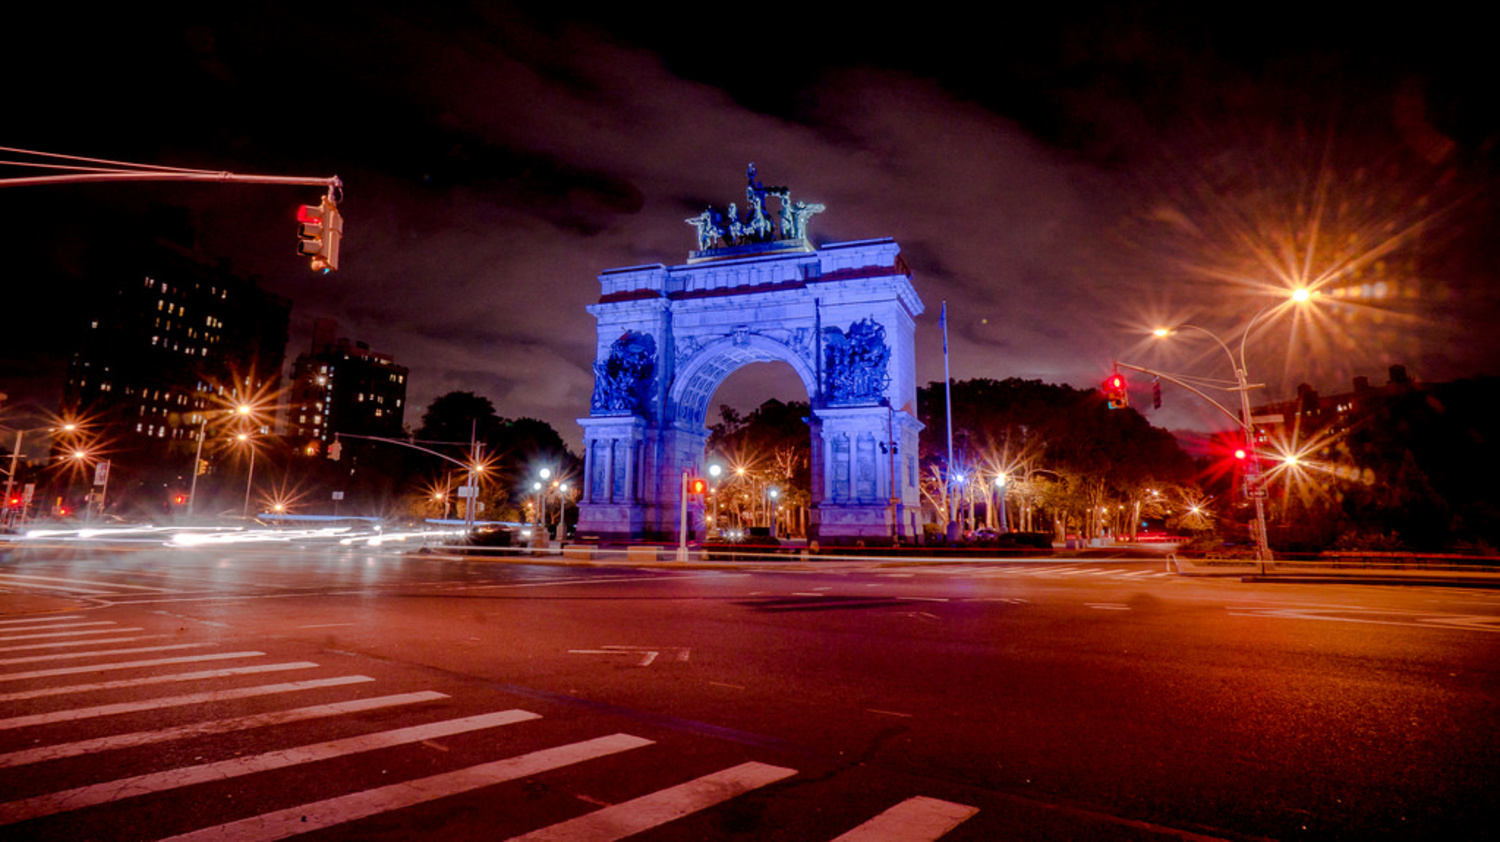 Grand Army Plaza | Brooklyn's busiest main roads converge around the rotunda known as Grand Army Plaza.